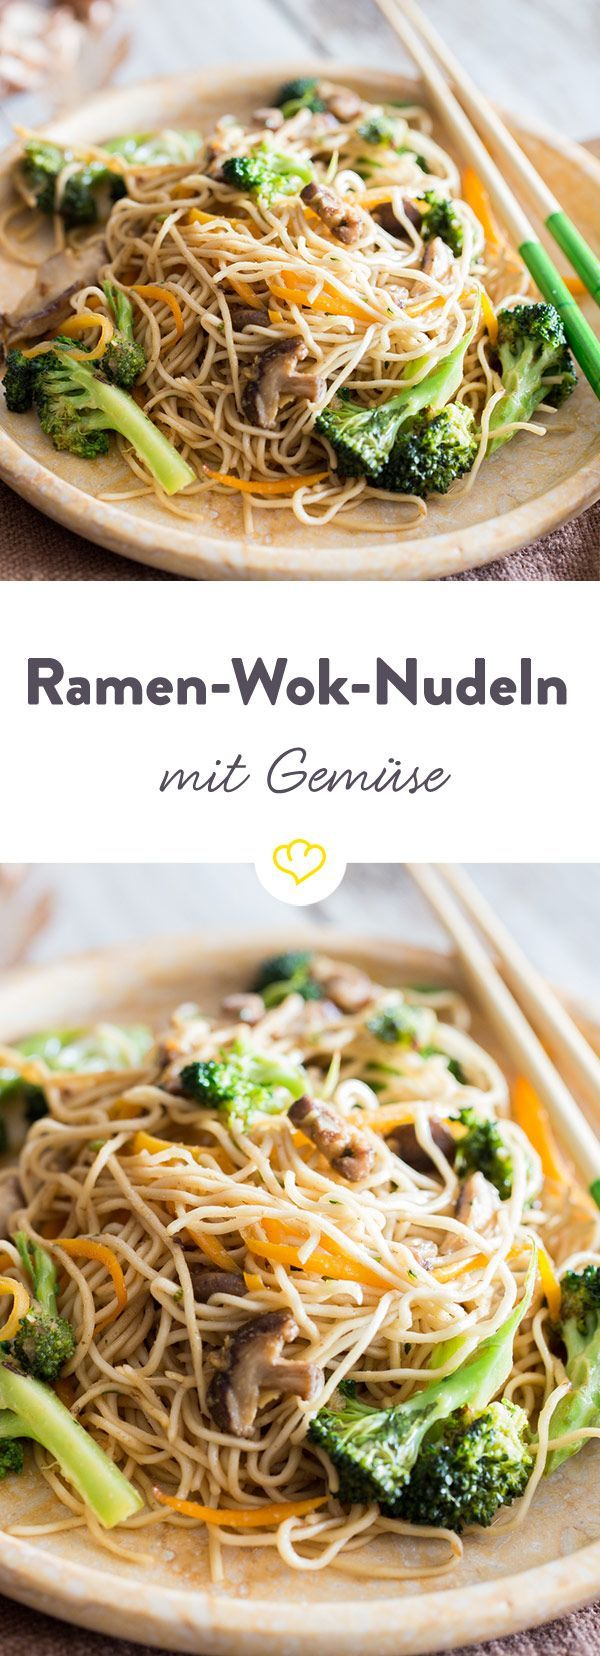 Hot and spicy: Vegetarian ramen noodles from the wok -  Crunchy vegetables meet Japanese noodle: broccoli, mushrooms and ramen noodles are swirled in a wok - #bestHealthyRecipes #HealthyRecipesfitness #HealthyRecipesfortheweek #HealthyRecipesnomeat #HealthyRecipessalmon #HealthyRecipessweet #Hot #Noodles #ramen #Spicy #vegetarian #Wok